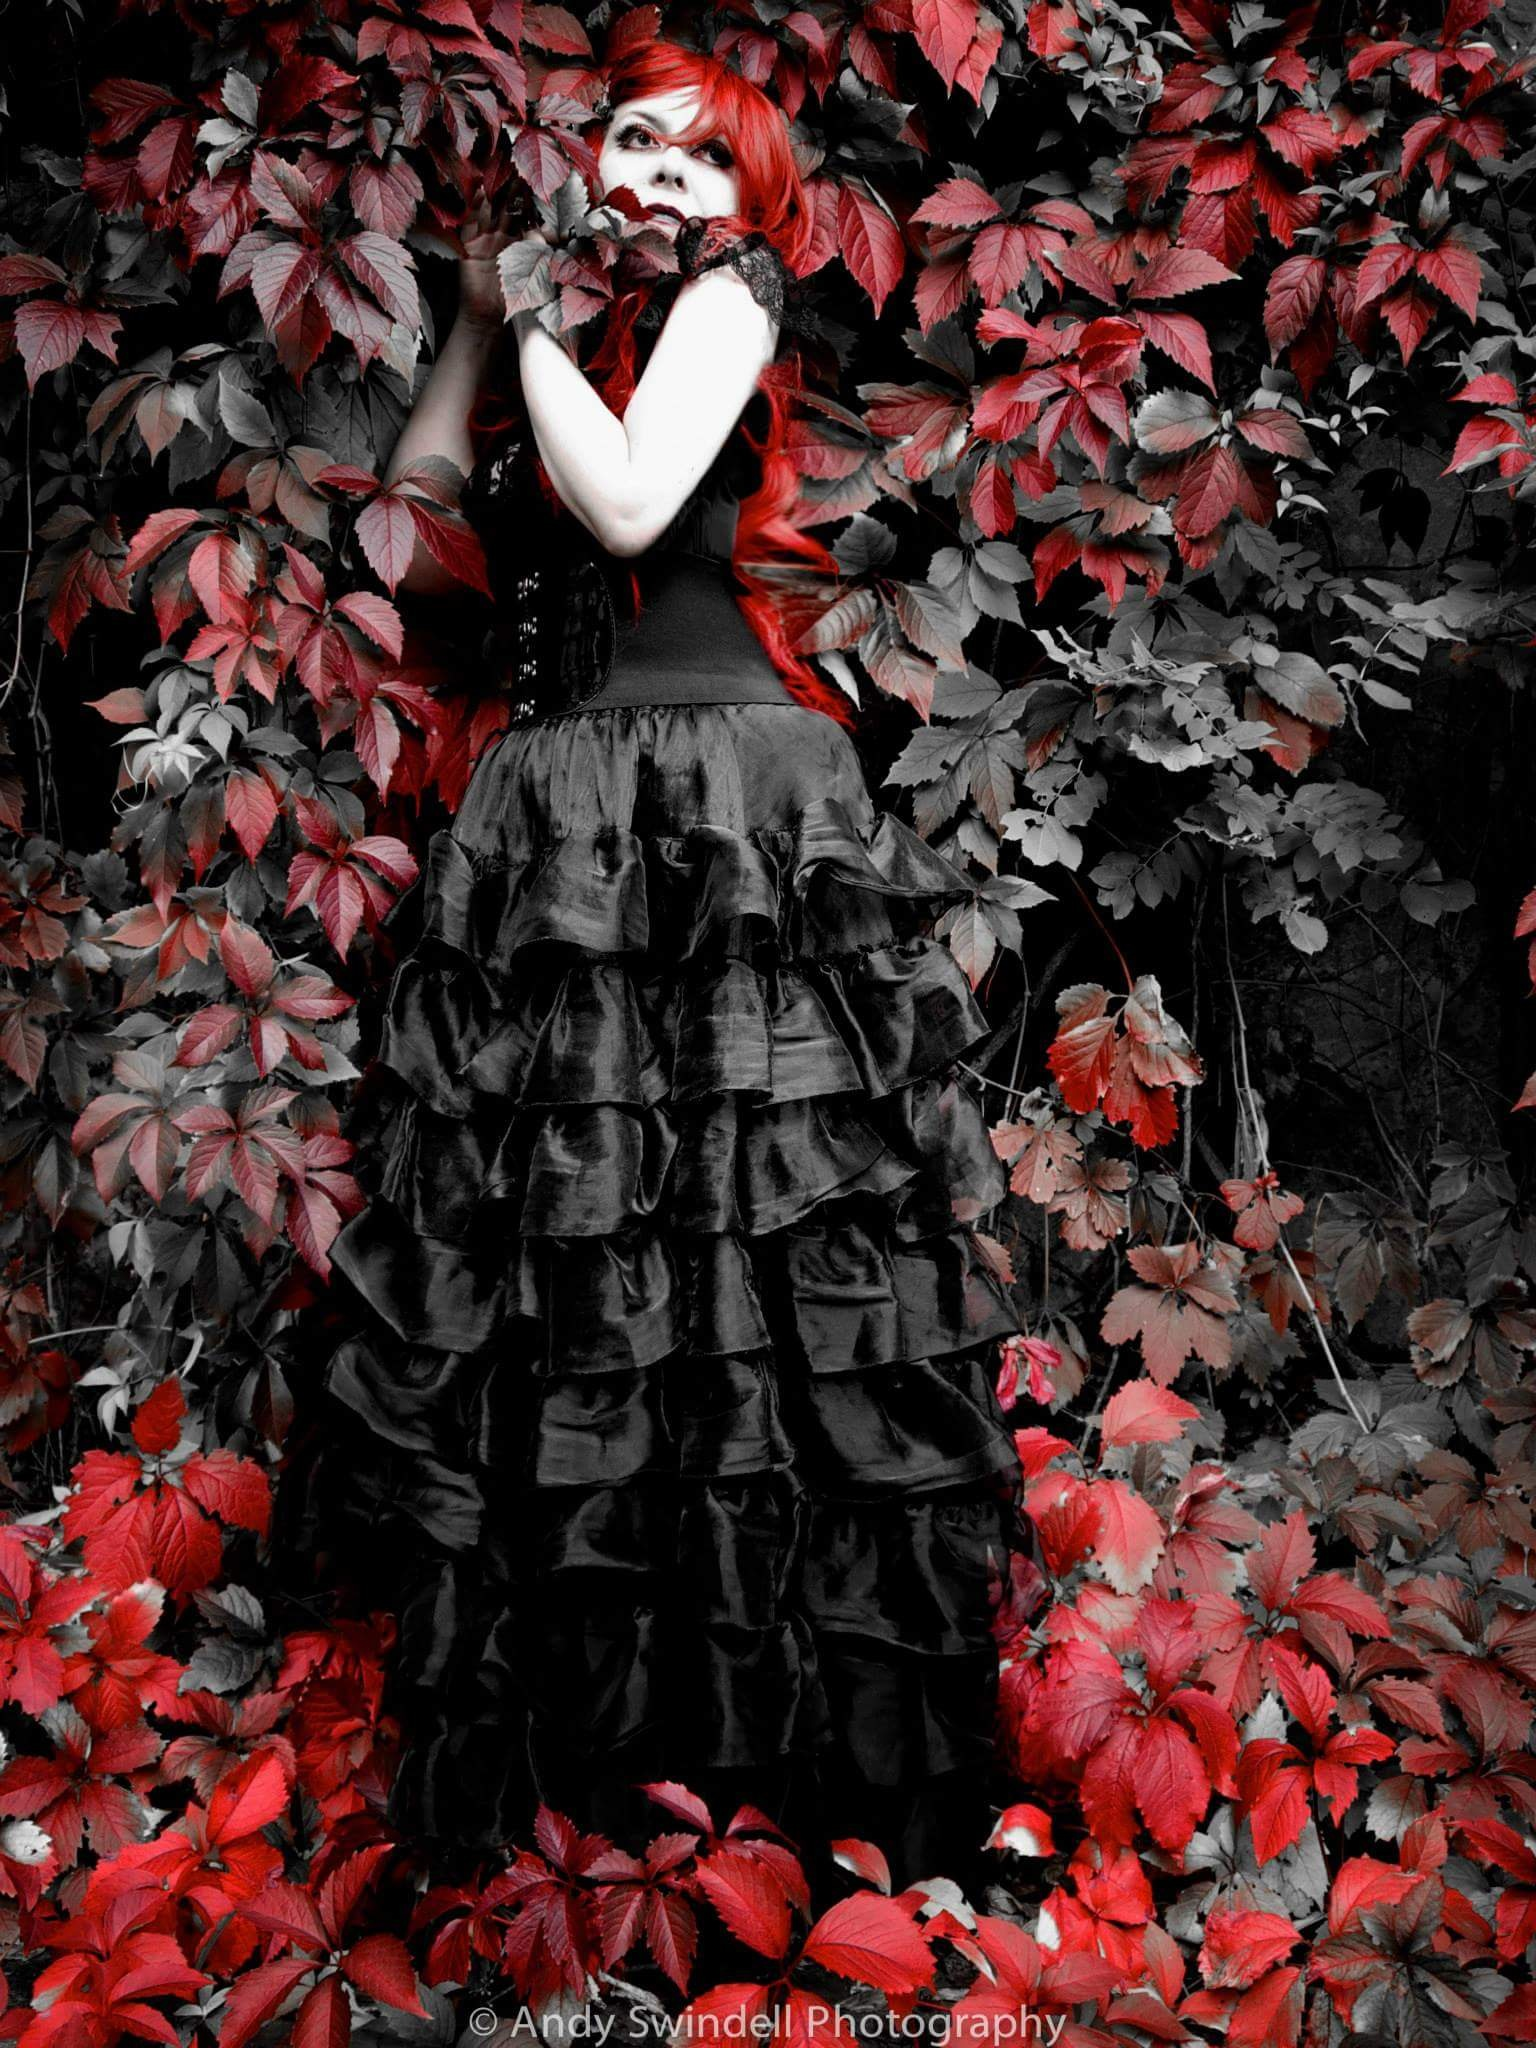 the caress of ivy by Andy Swindell